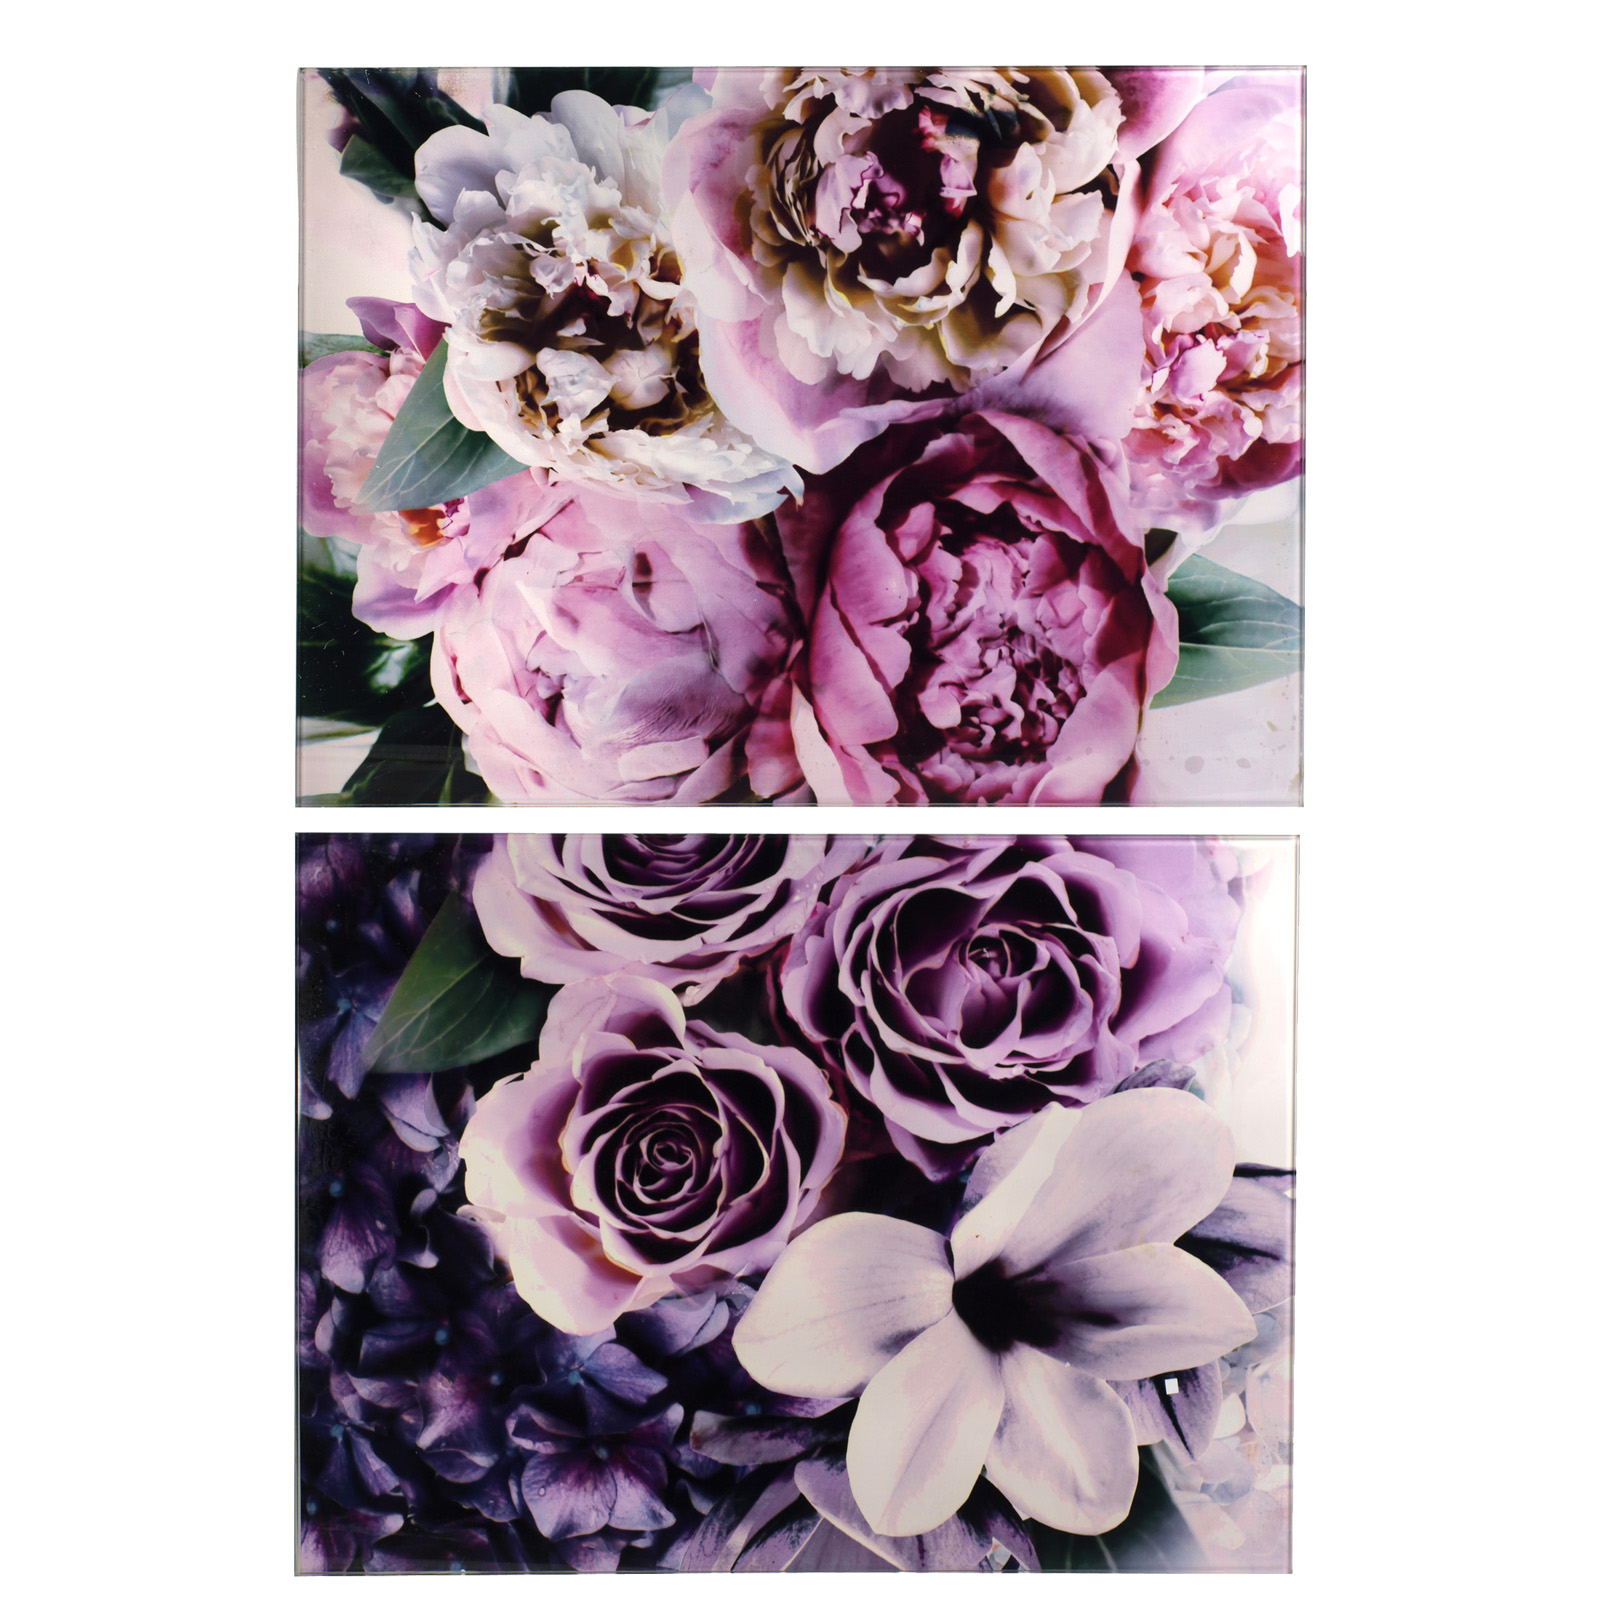 SIL BLOOM SET OF 2 GLASS PLACEMATS